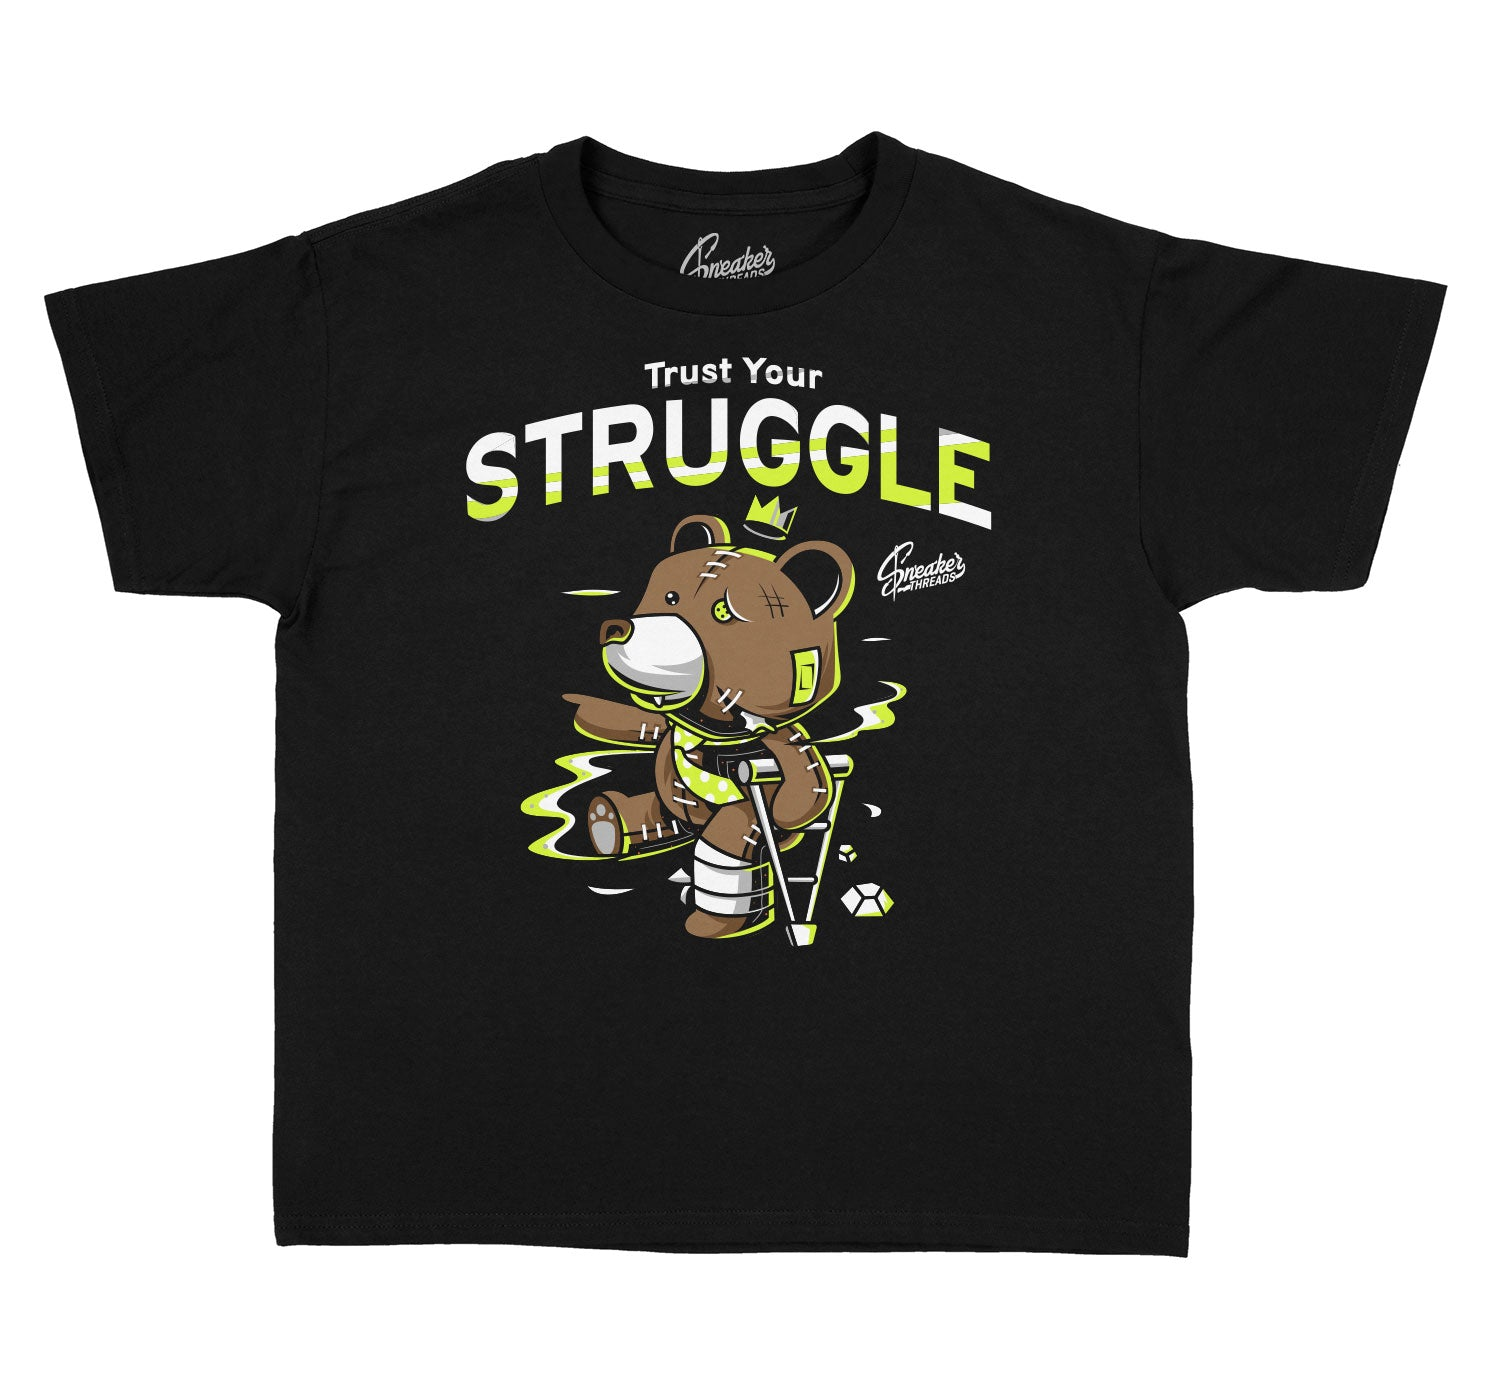 Kids Foam Volt Shirt - Trust Your Struggle - Black